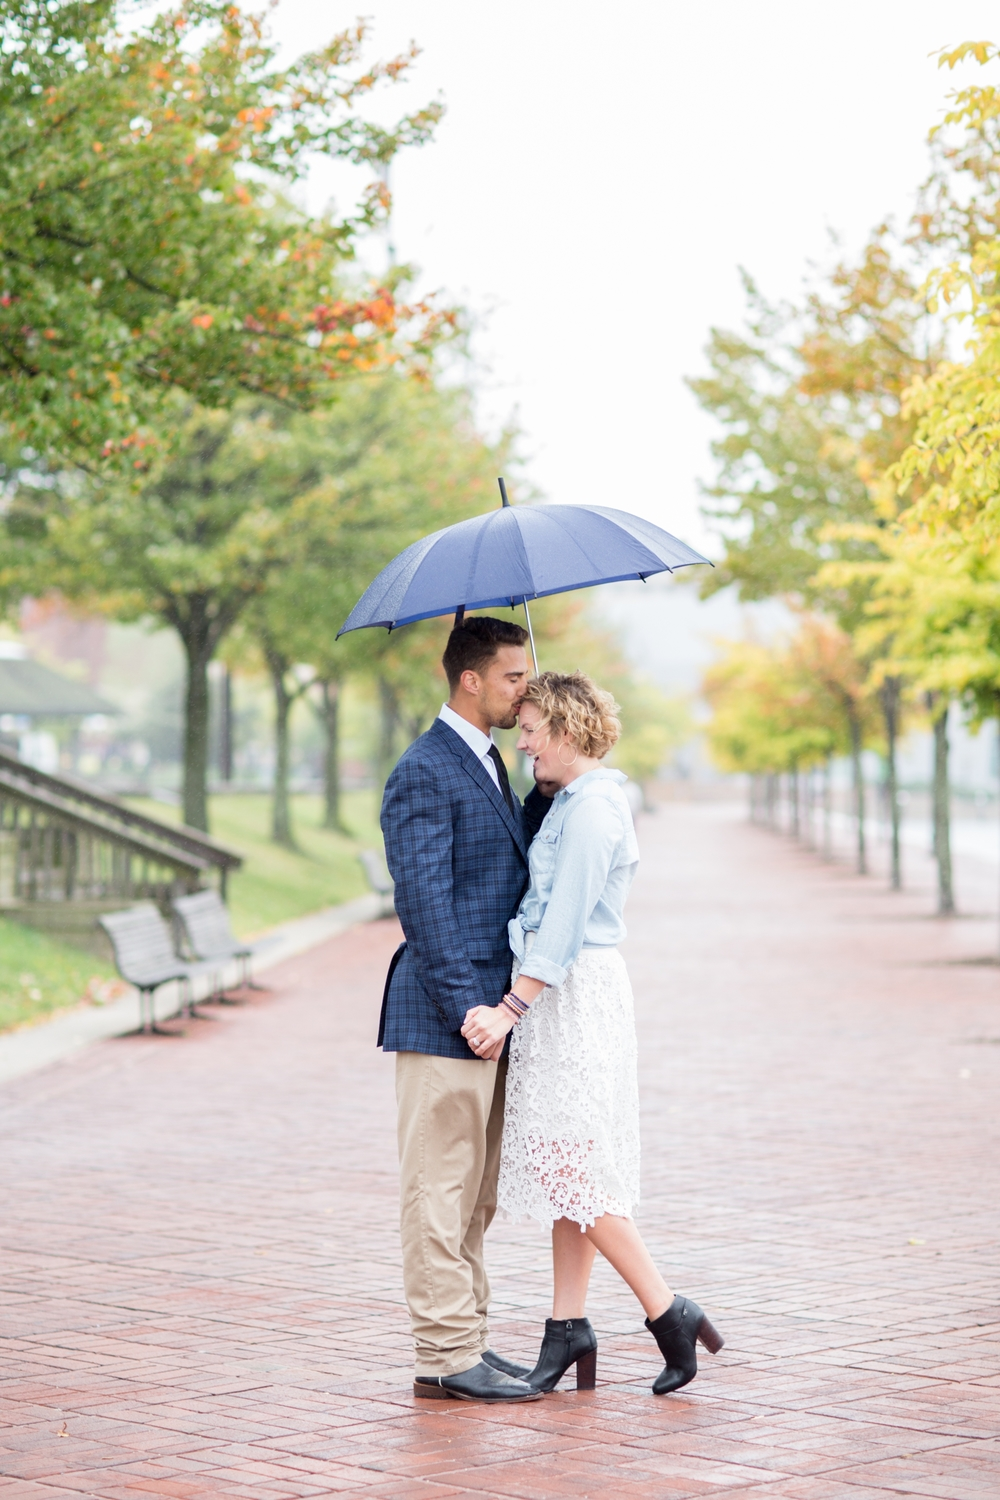 Hayley & Crockett Engagement-198_anna grace photography maryland engagement photographer baltimore ravens.jpg